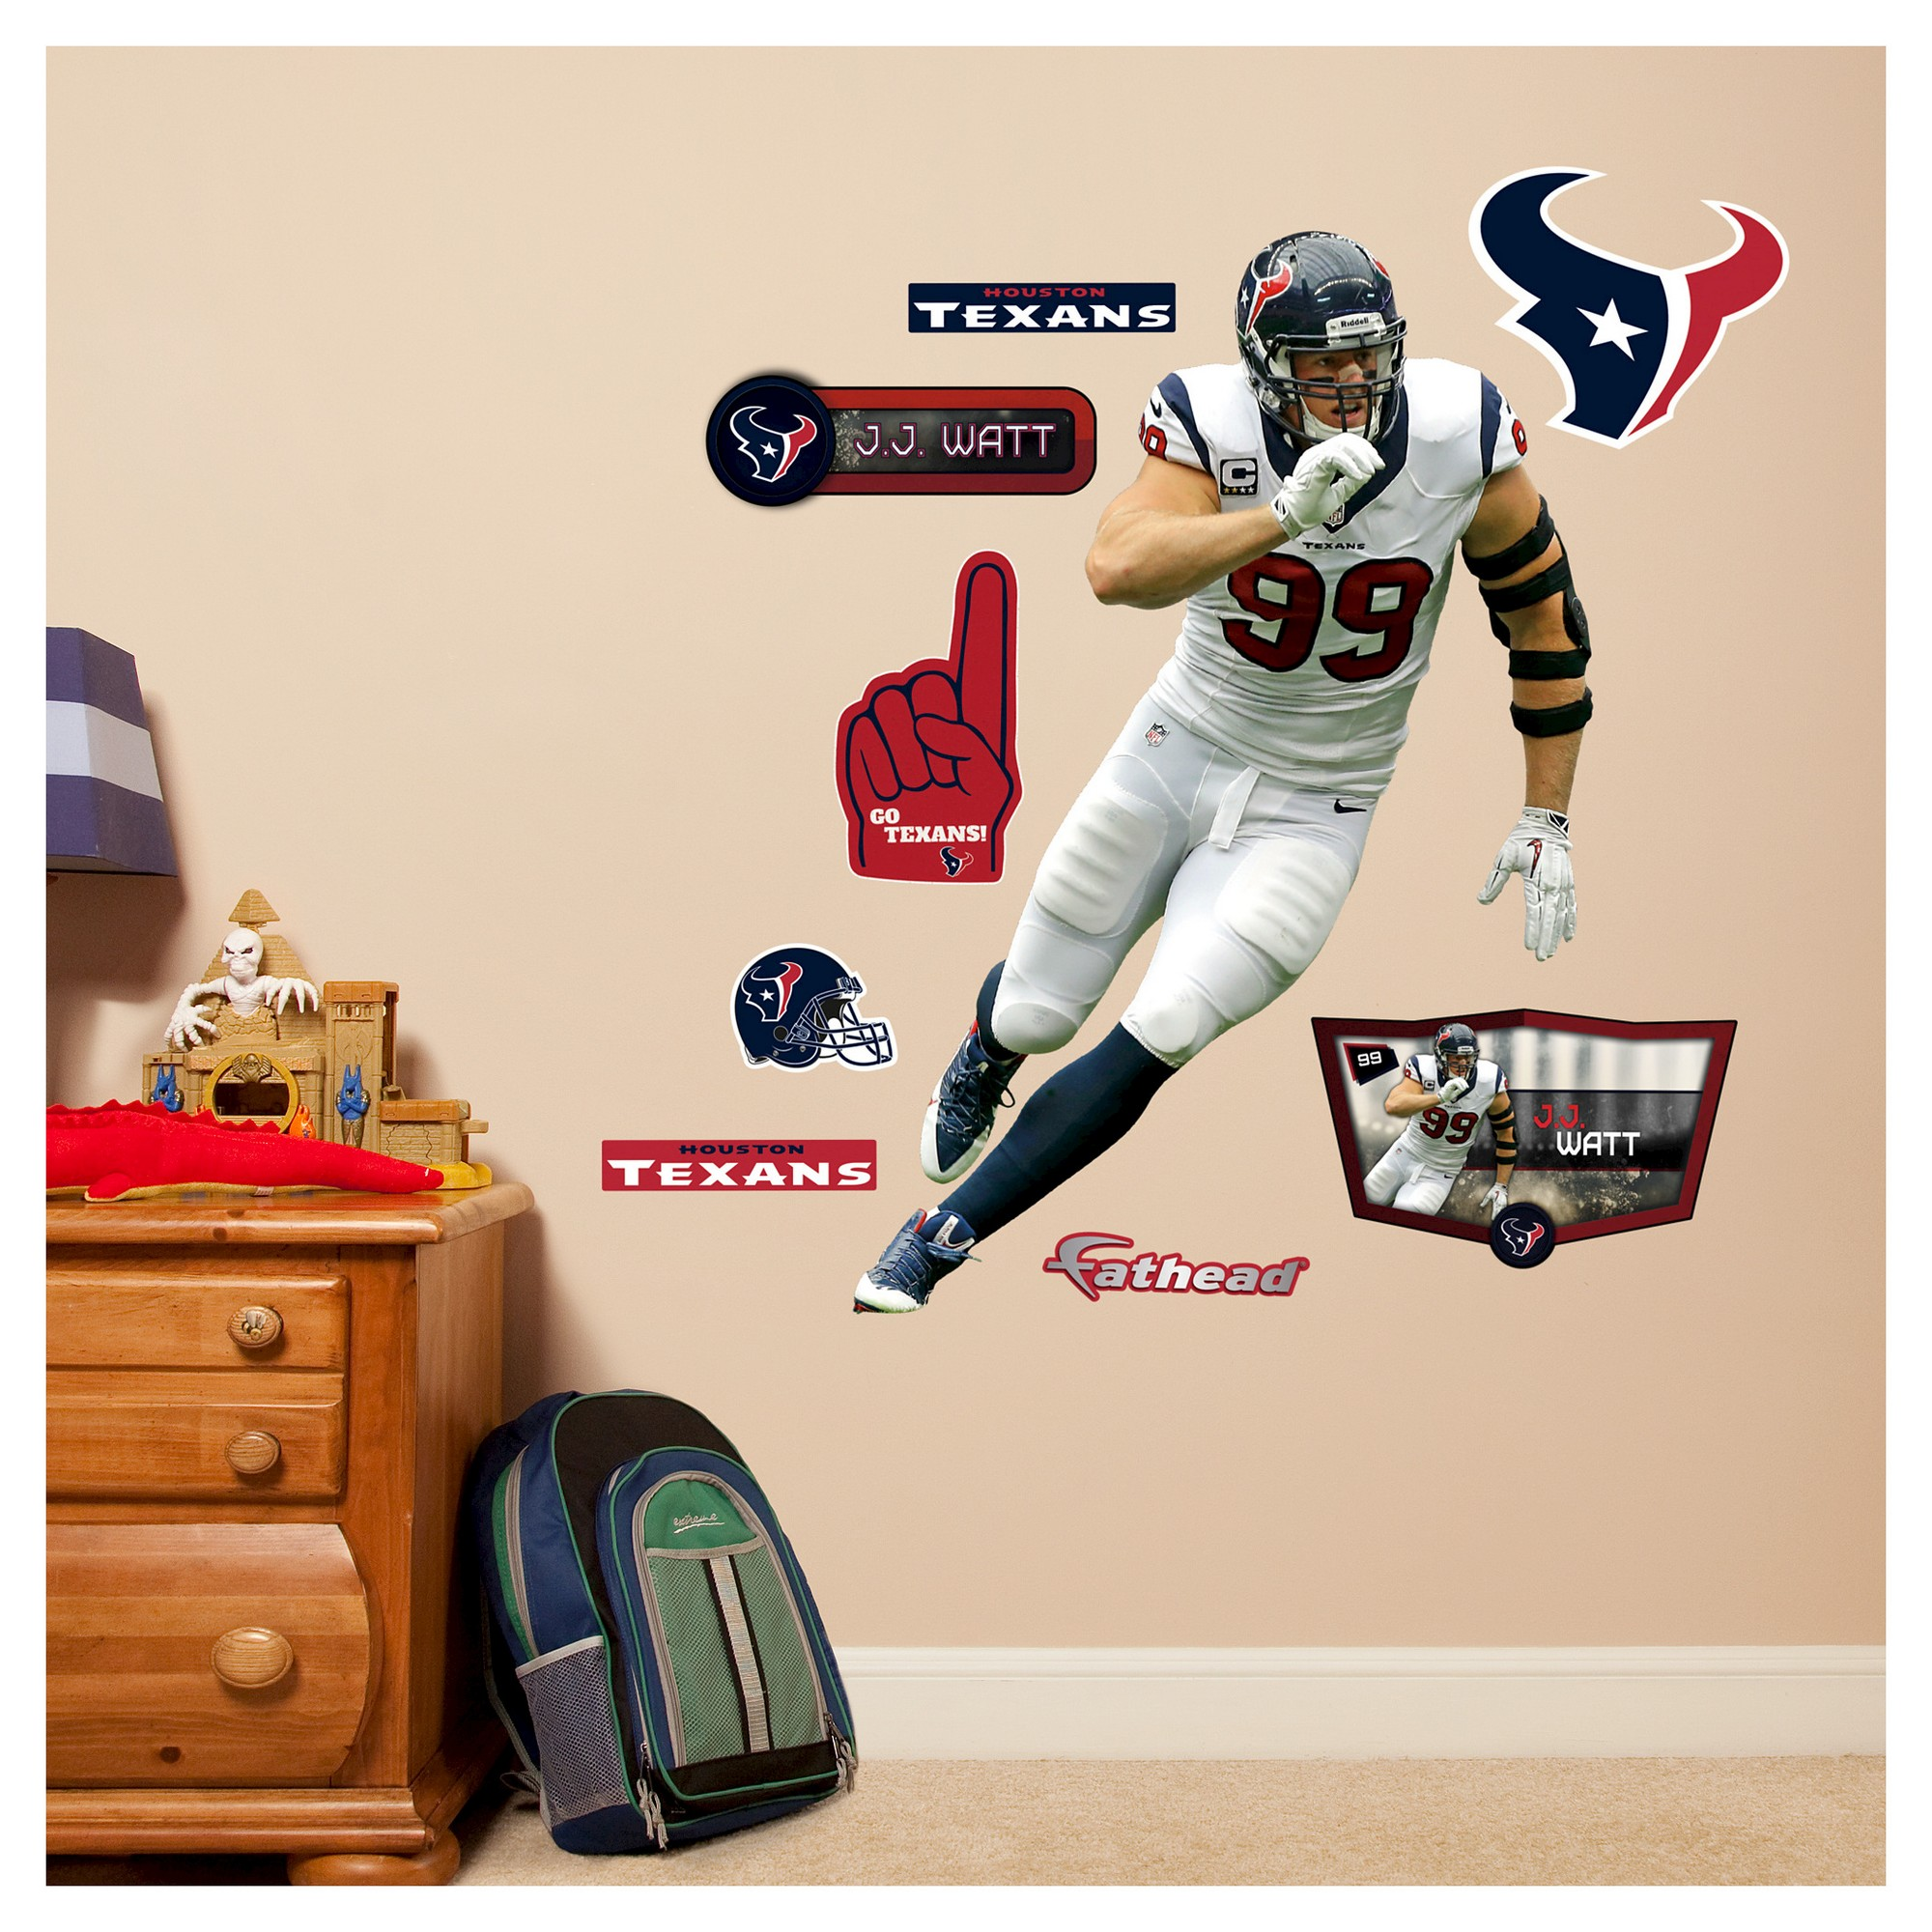 Nfl Houston Texans J Watt Fathead Wall Decal Set